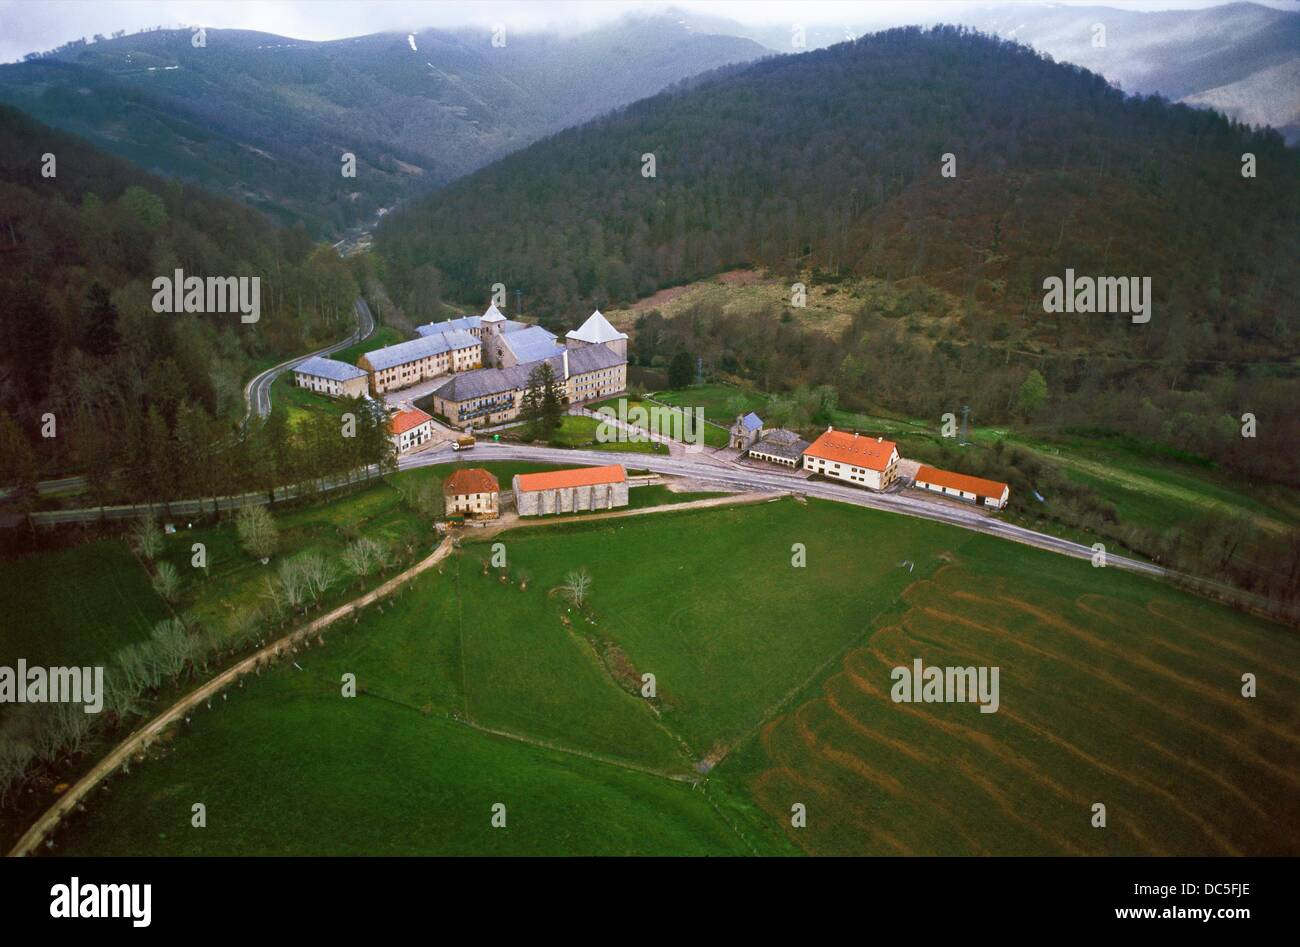 Roncesvalles Collegiate. Navarre-Province. Way to Santiago. Spain. - Stock Image